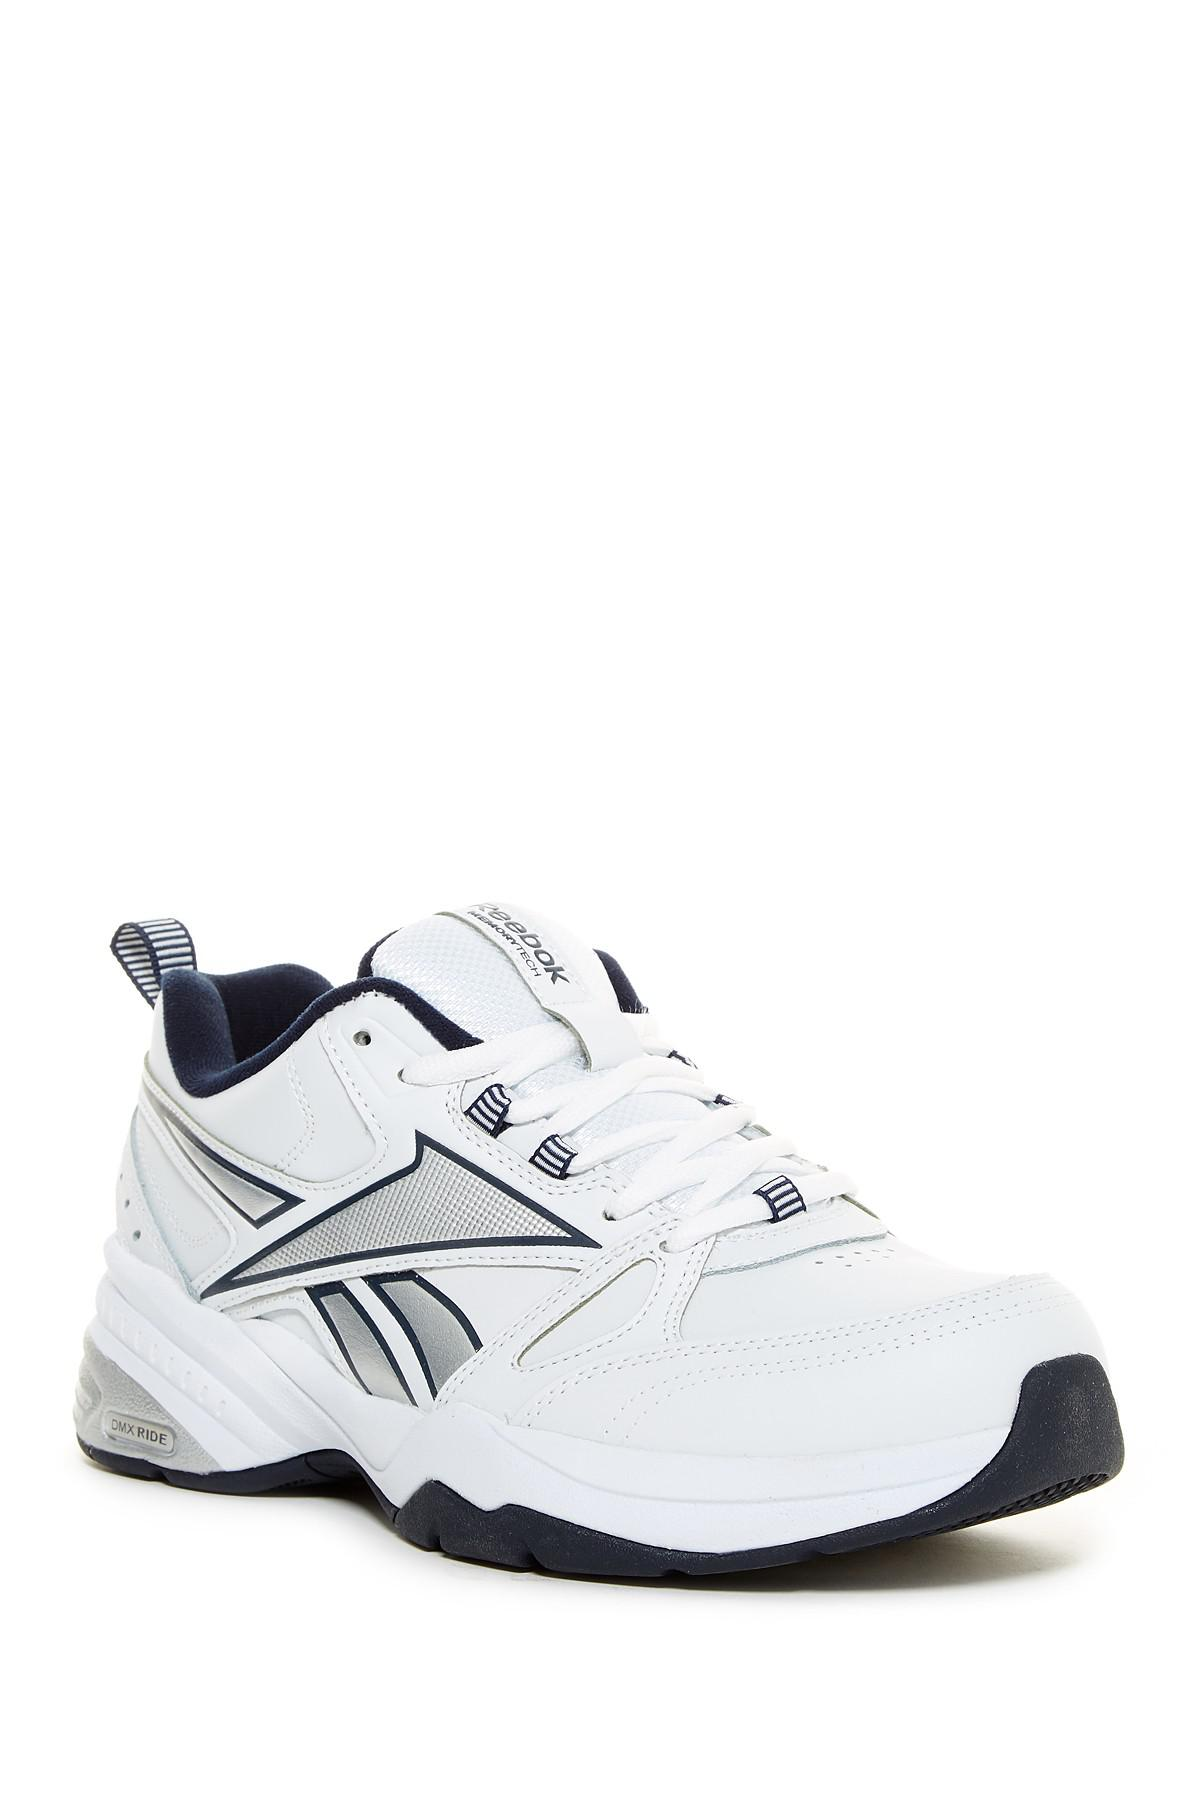 76a478a3e727e8 Lyst - Reebok Royal Trainer Xwide 4e Athletic Sneaker - Extra Wide ...